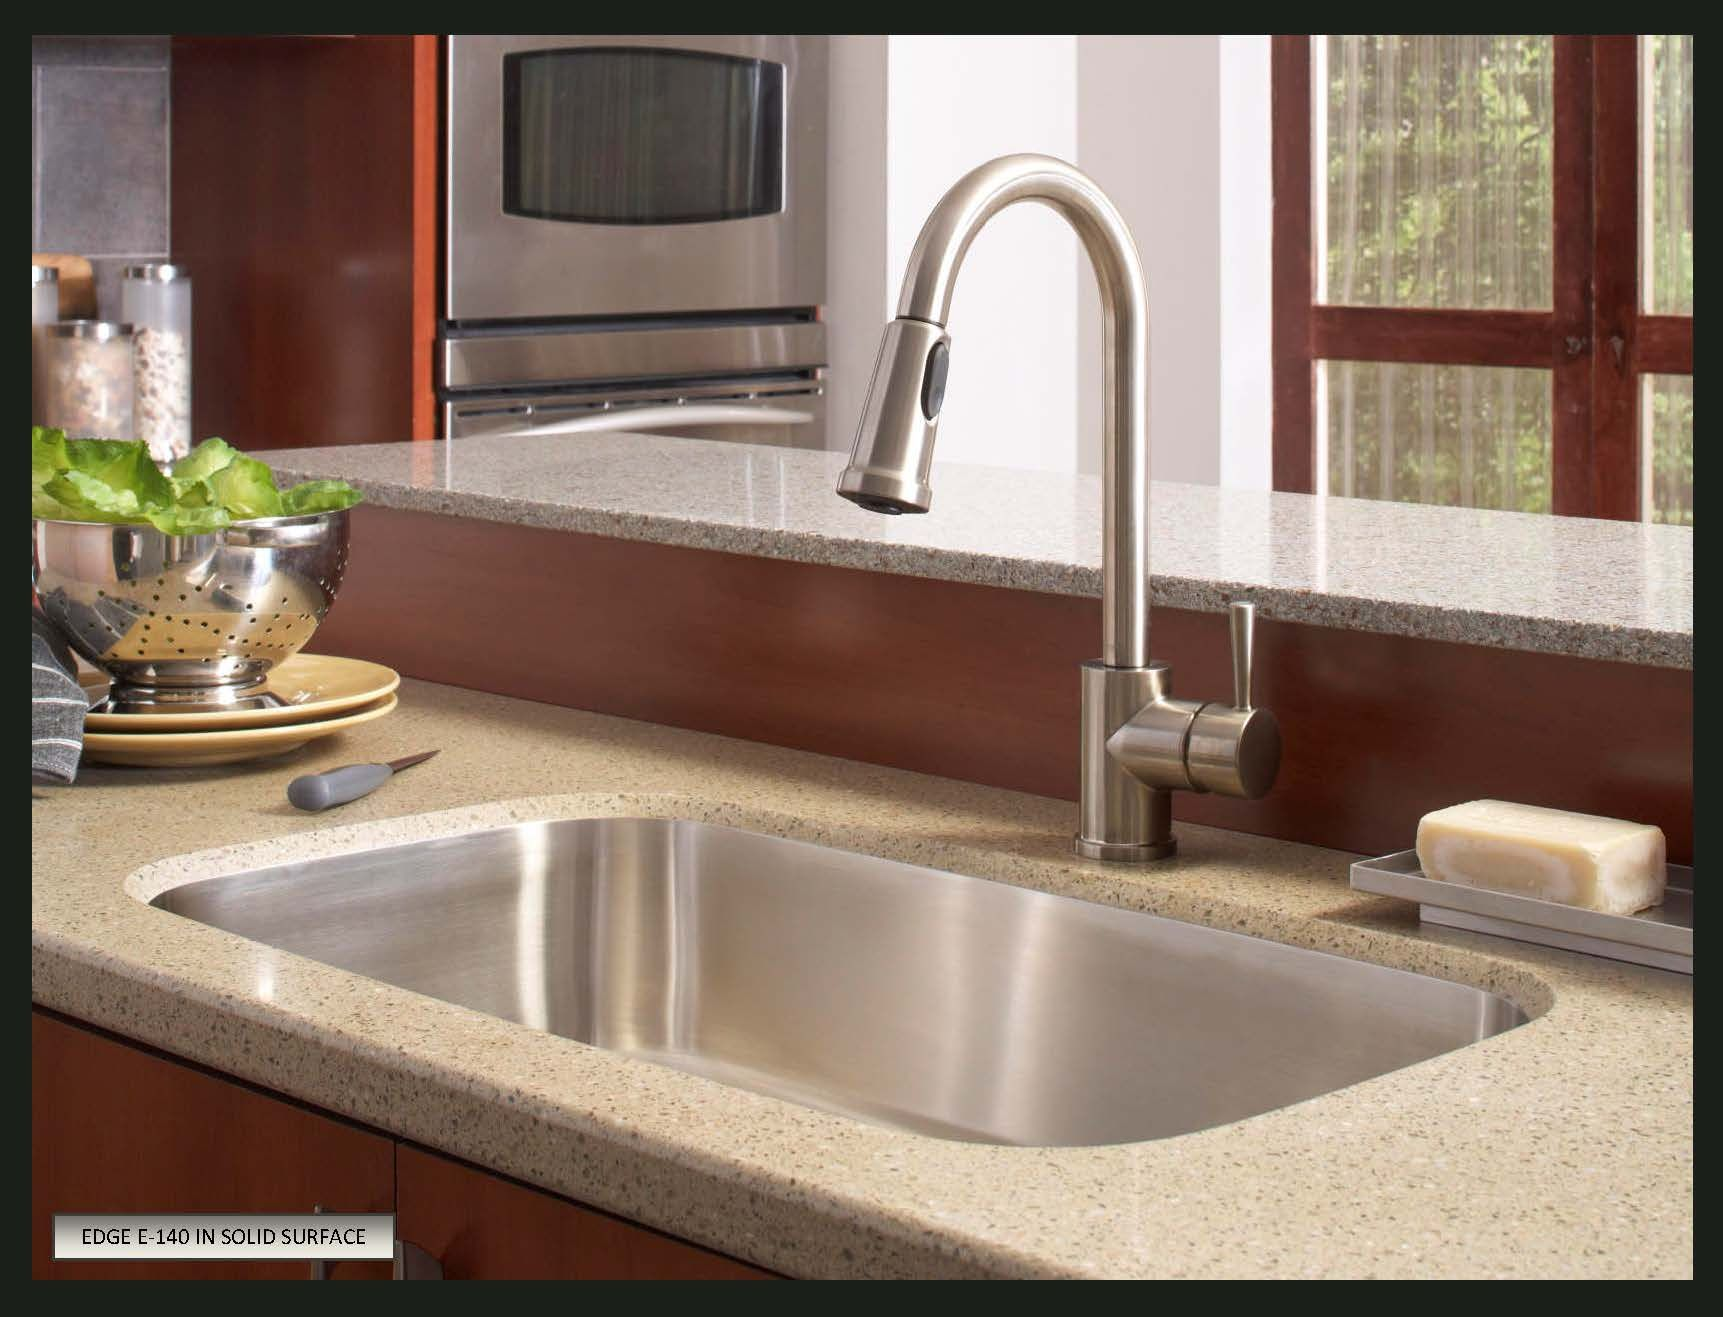 Here S A Close Up Of An Integral Sink These Sinks Have No Nooks